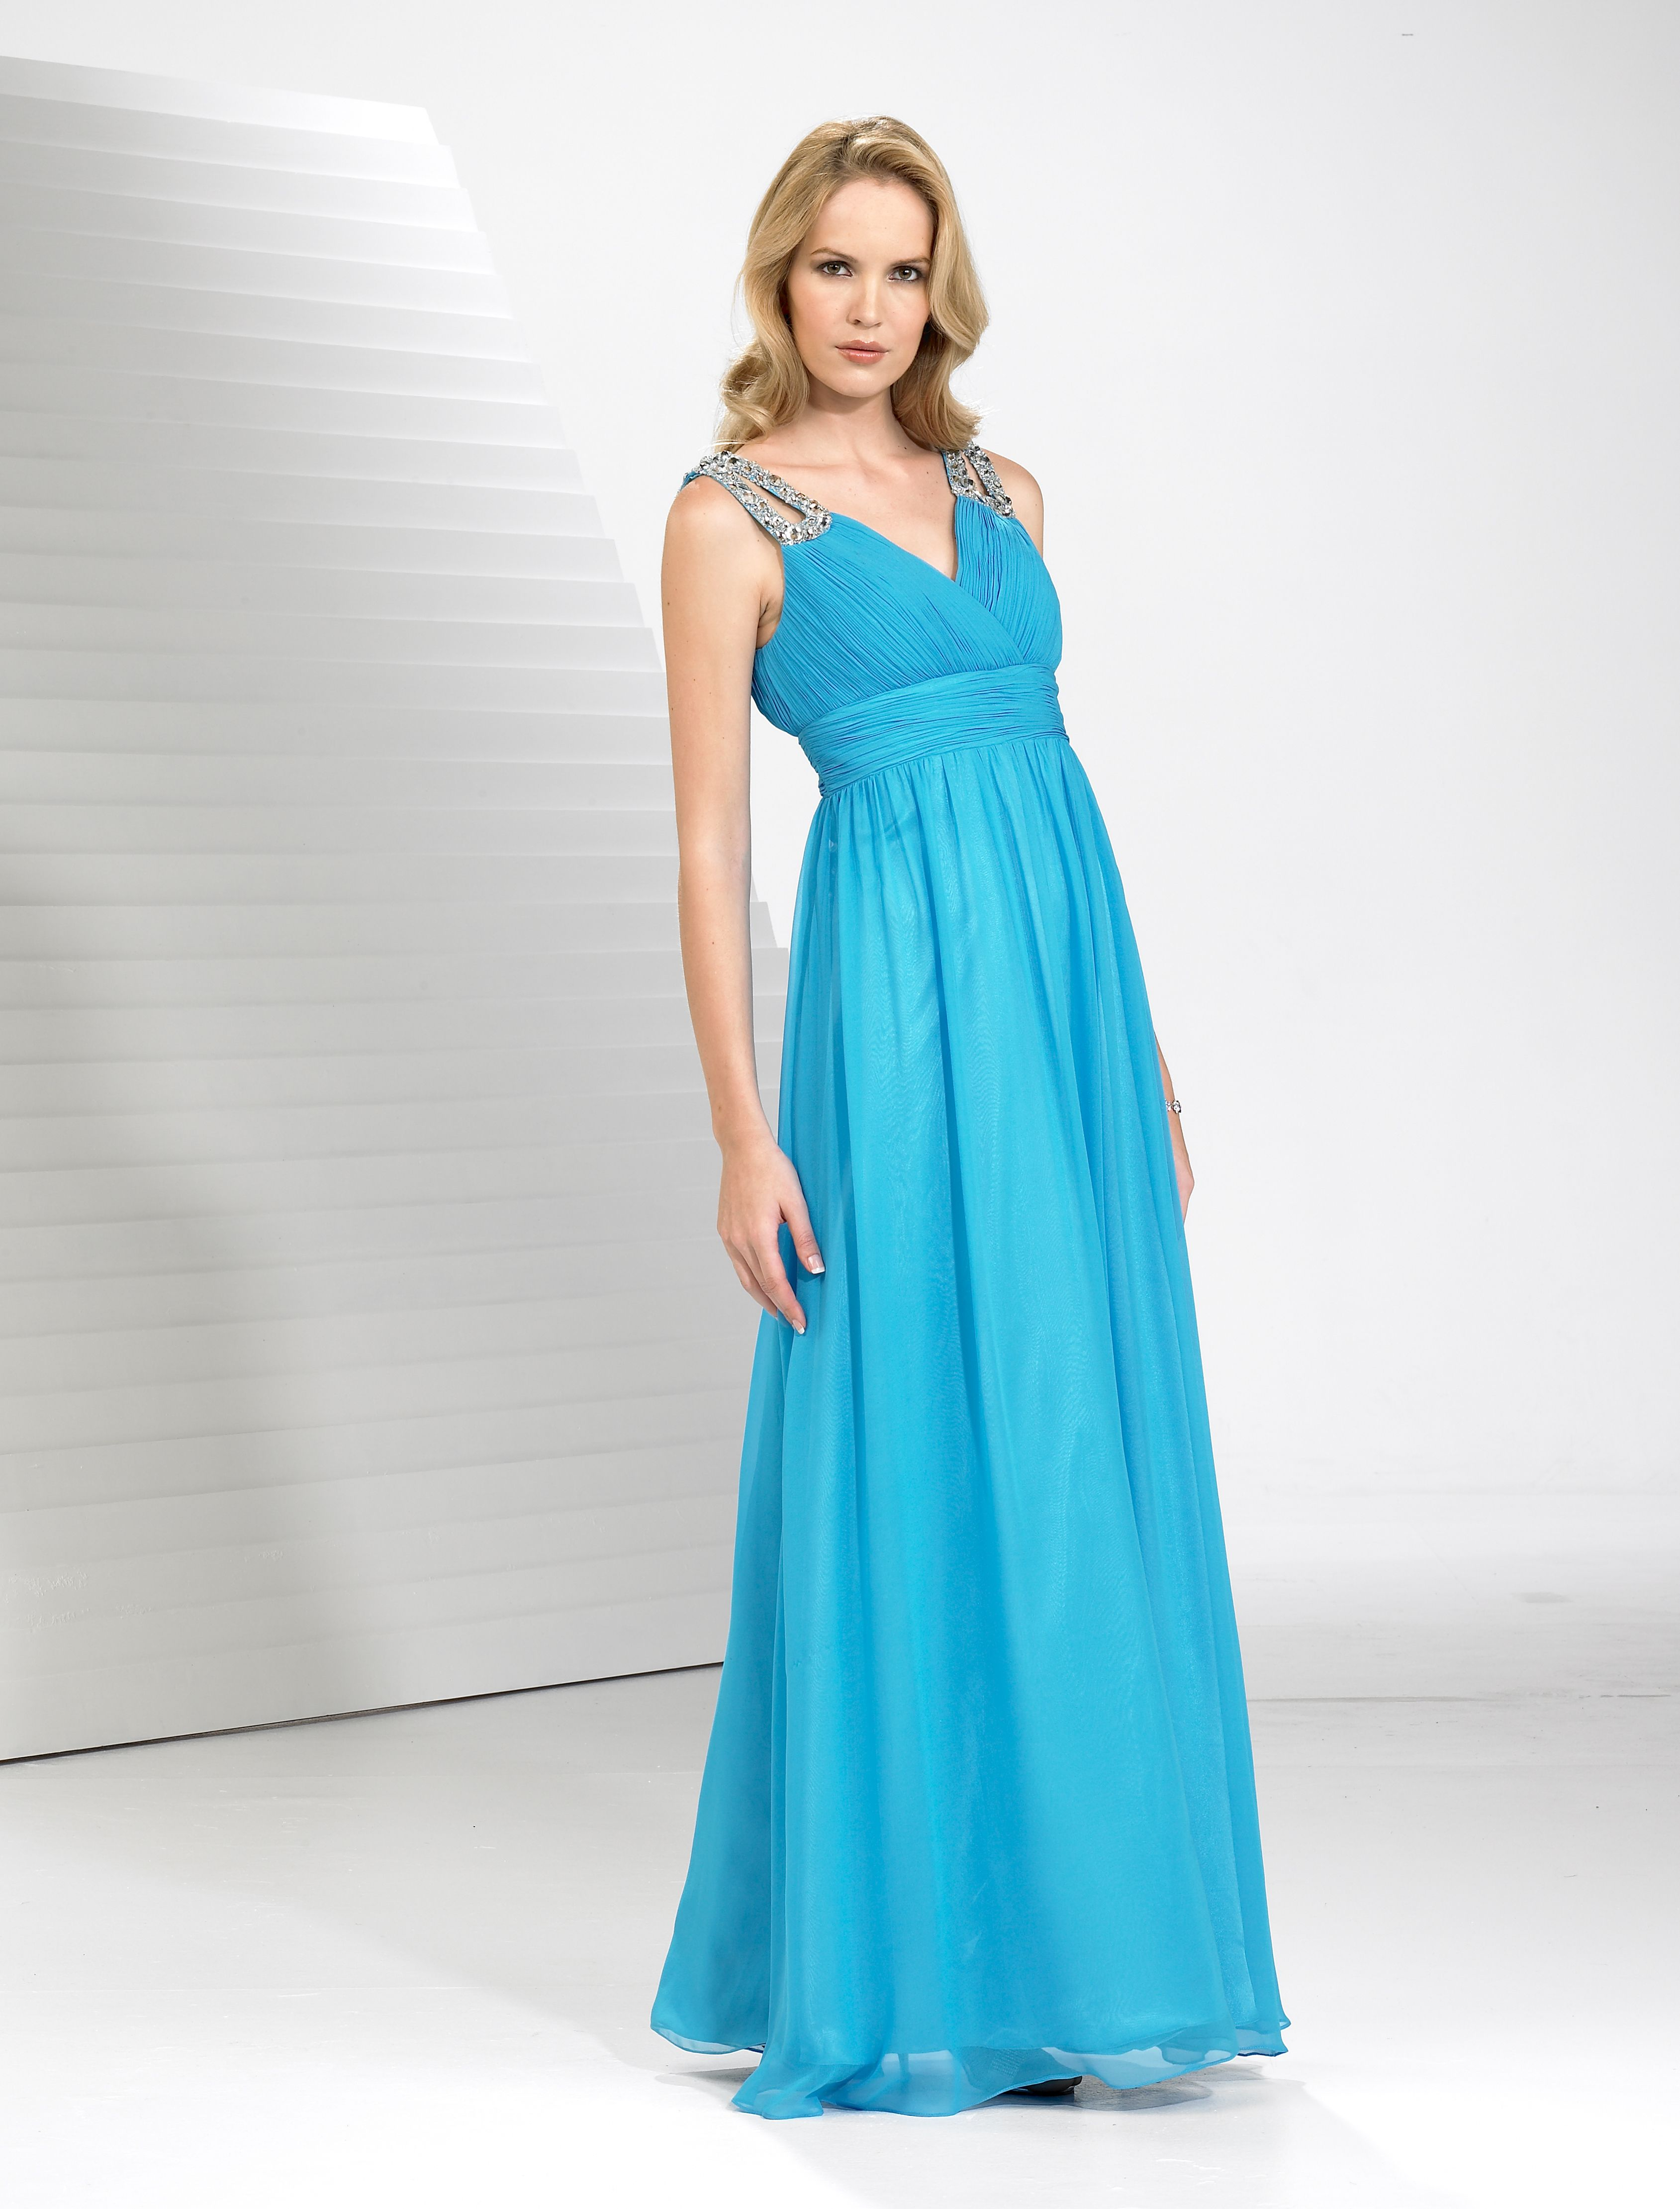 Long turquoise prom gown would look fabulous on you. | Prom Dresses ...